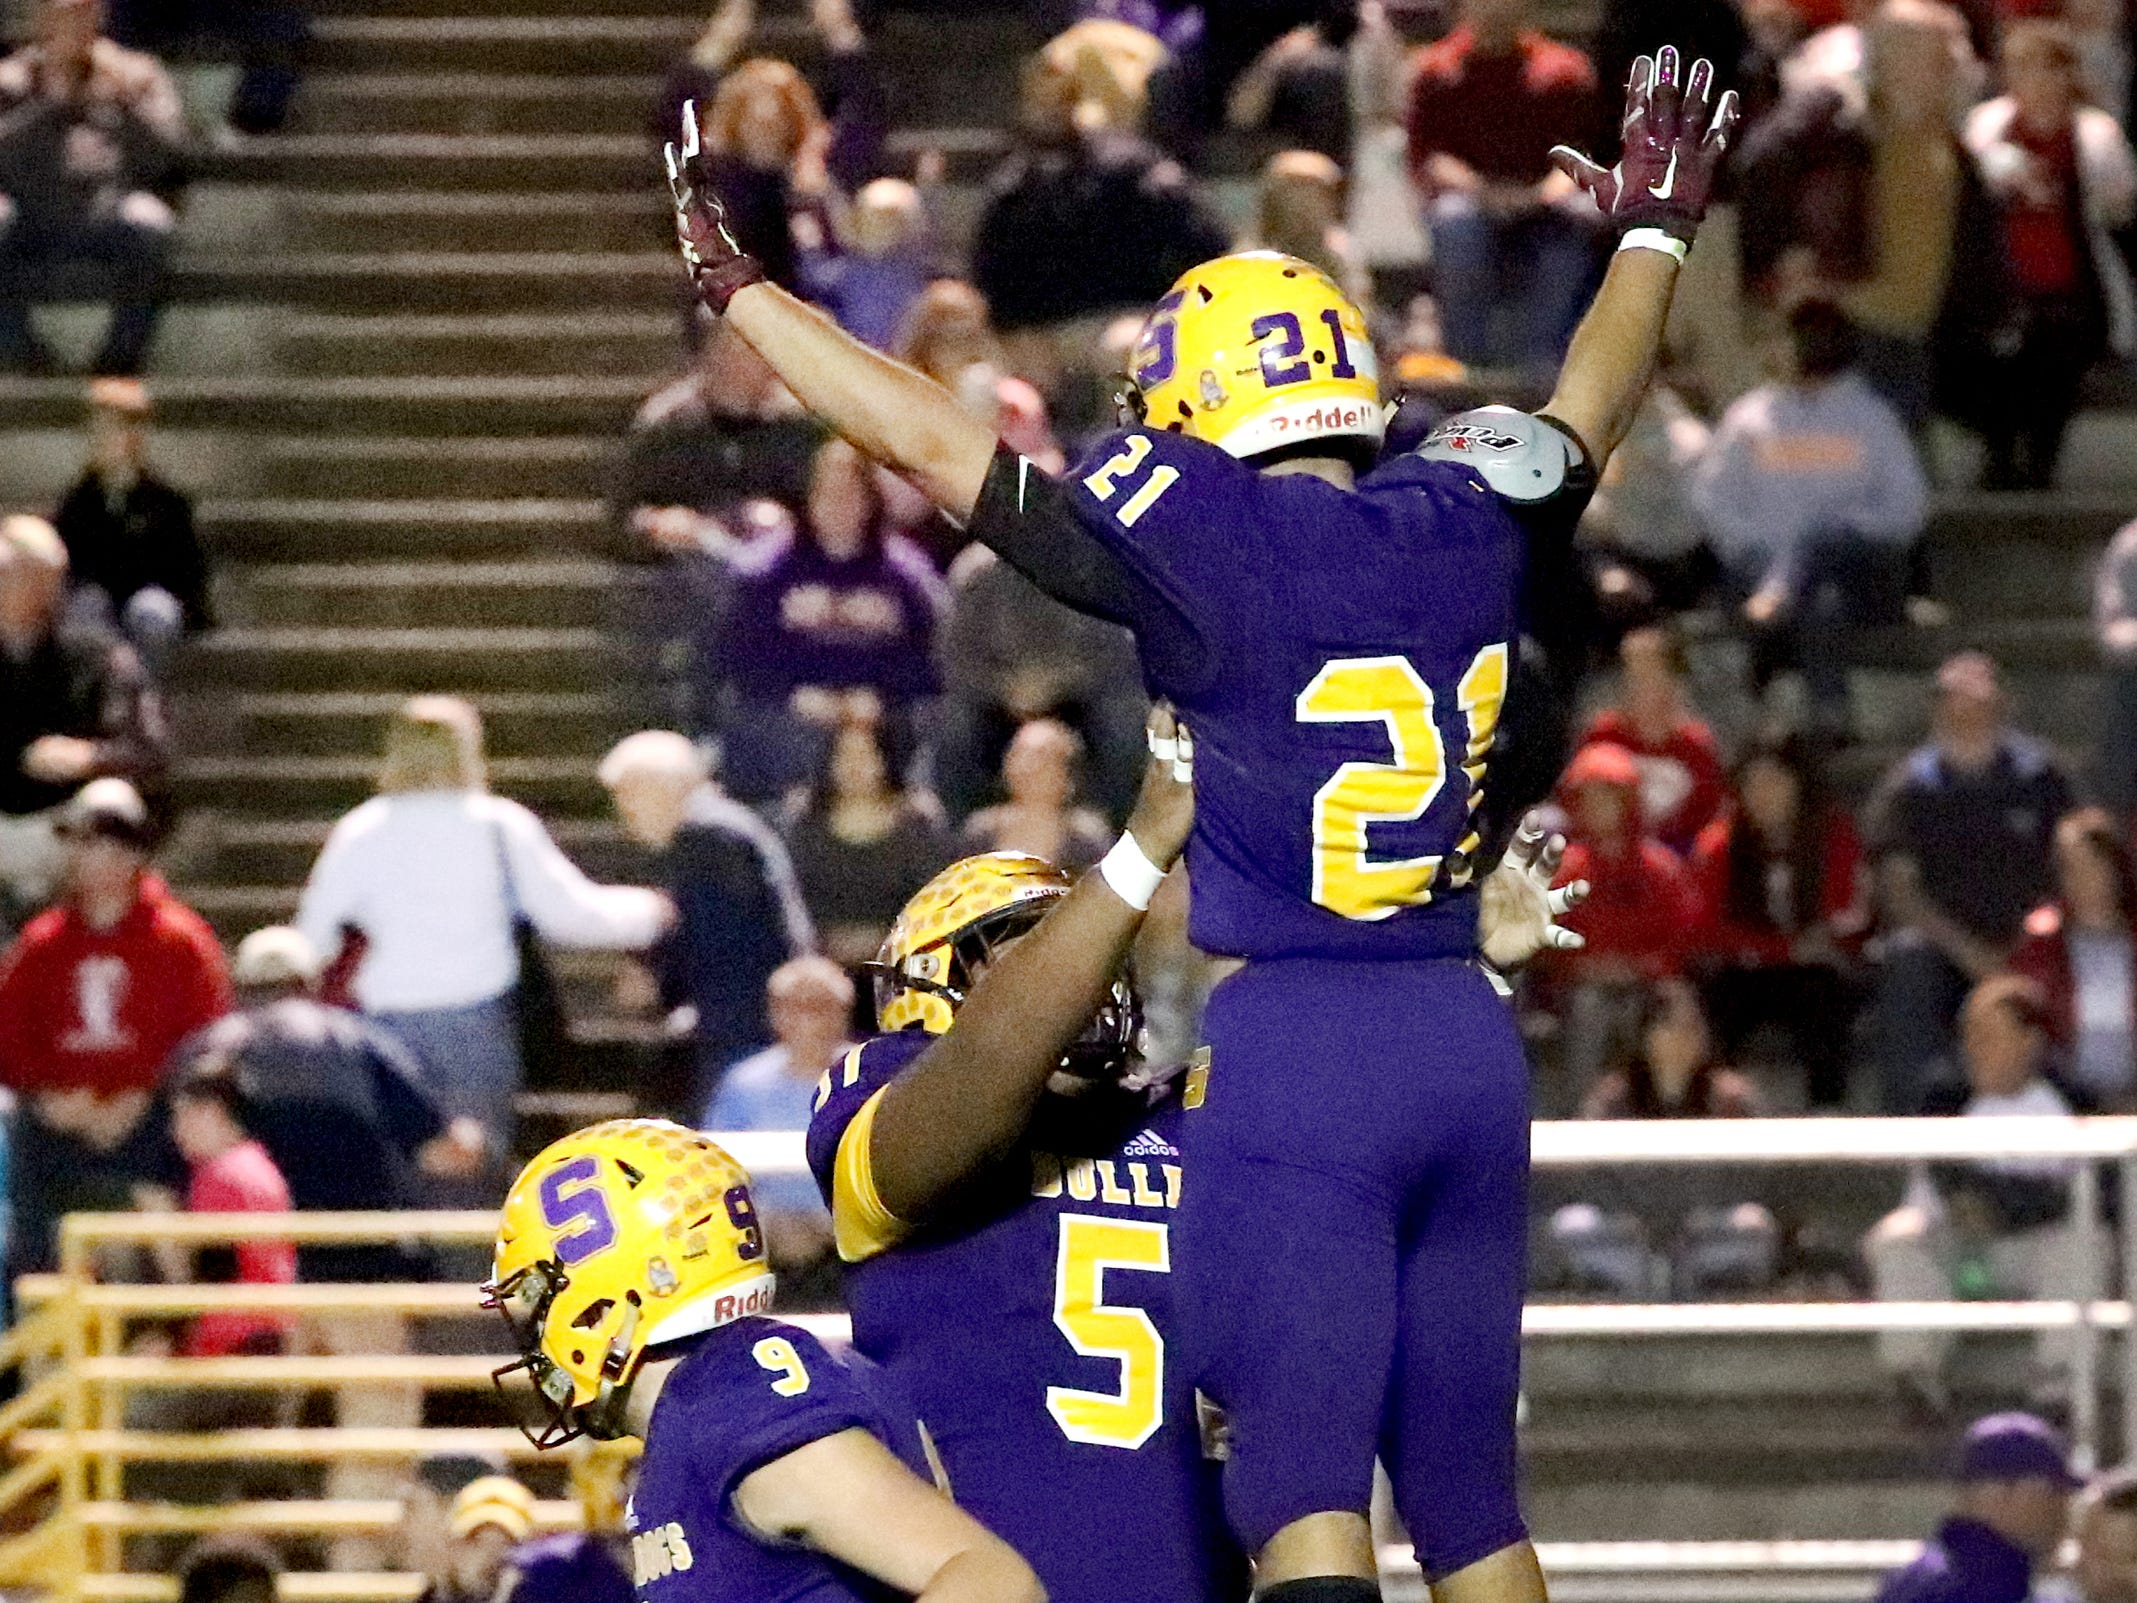 Smyrna's Blake Watkins (21) and Marlon Alexander (51) celebrate a touchdown made by Watkins against Stewarts Creek at Smyrna High School on Friday, Oct. 12, 2018.